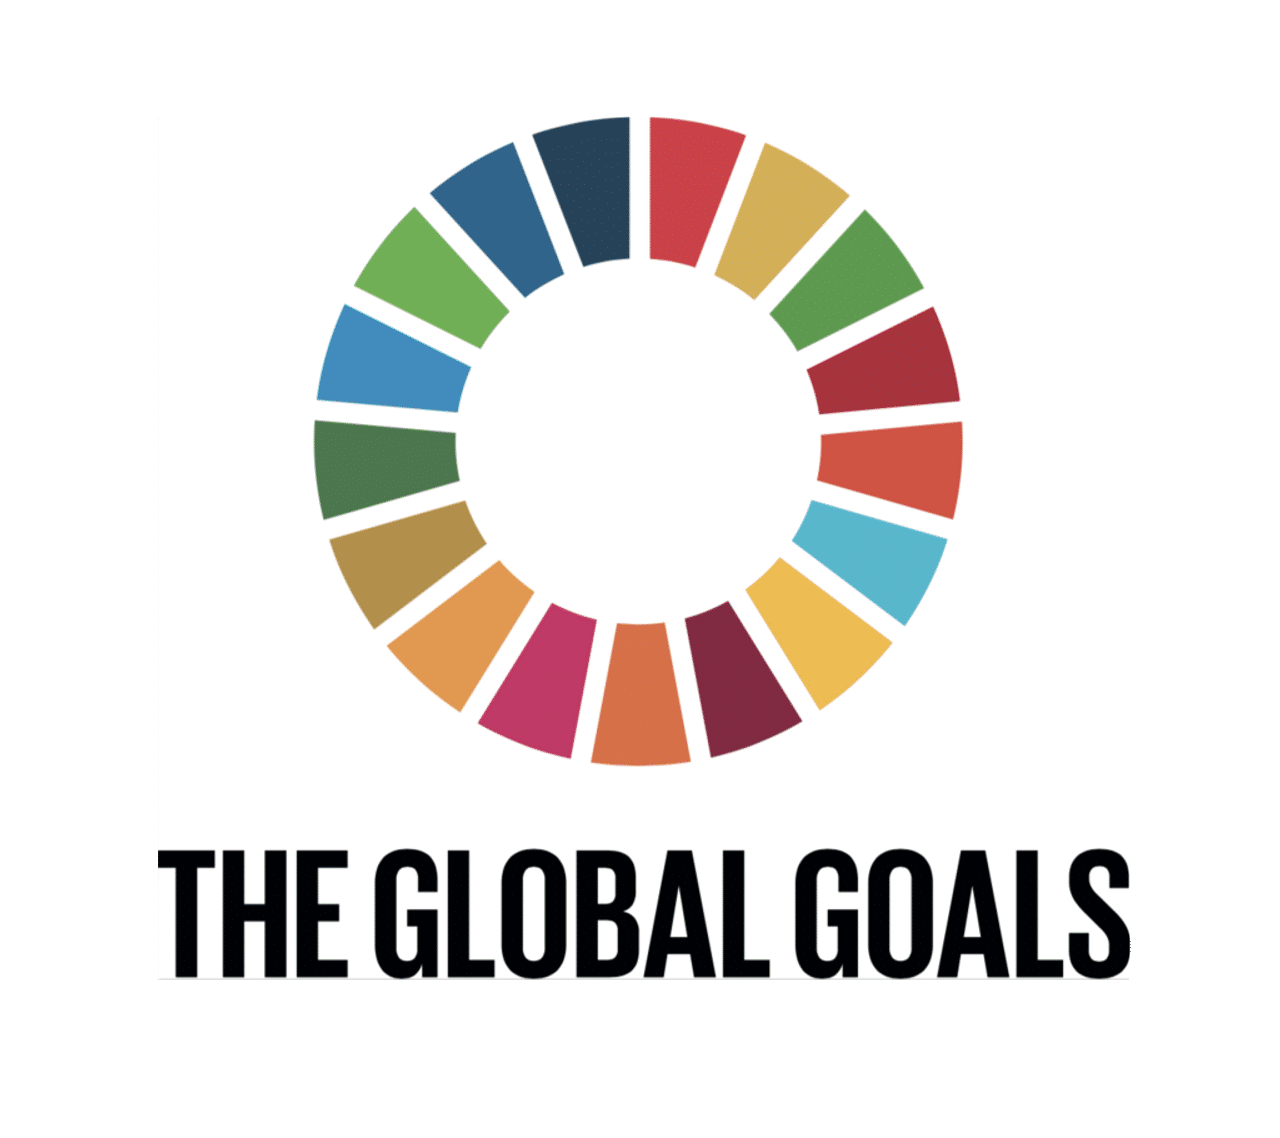 Goal vector logo. Resources the global goals